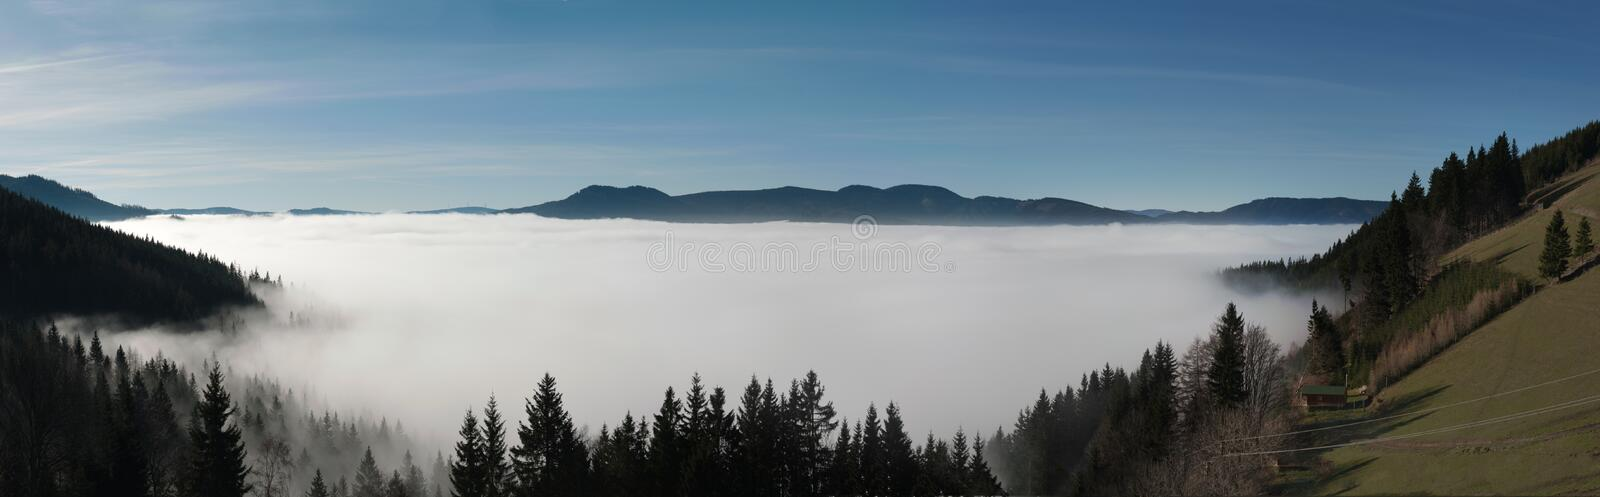 Inversion. Panoramic photo of an inversion weather phenomenon royalty free stock image